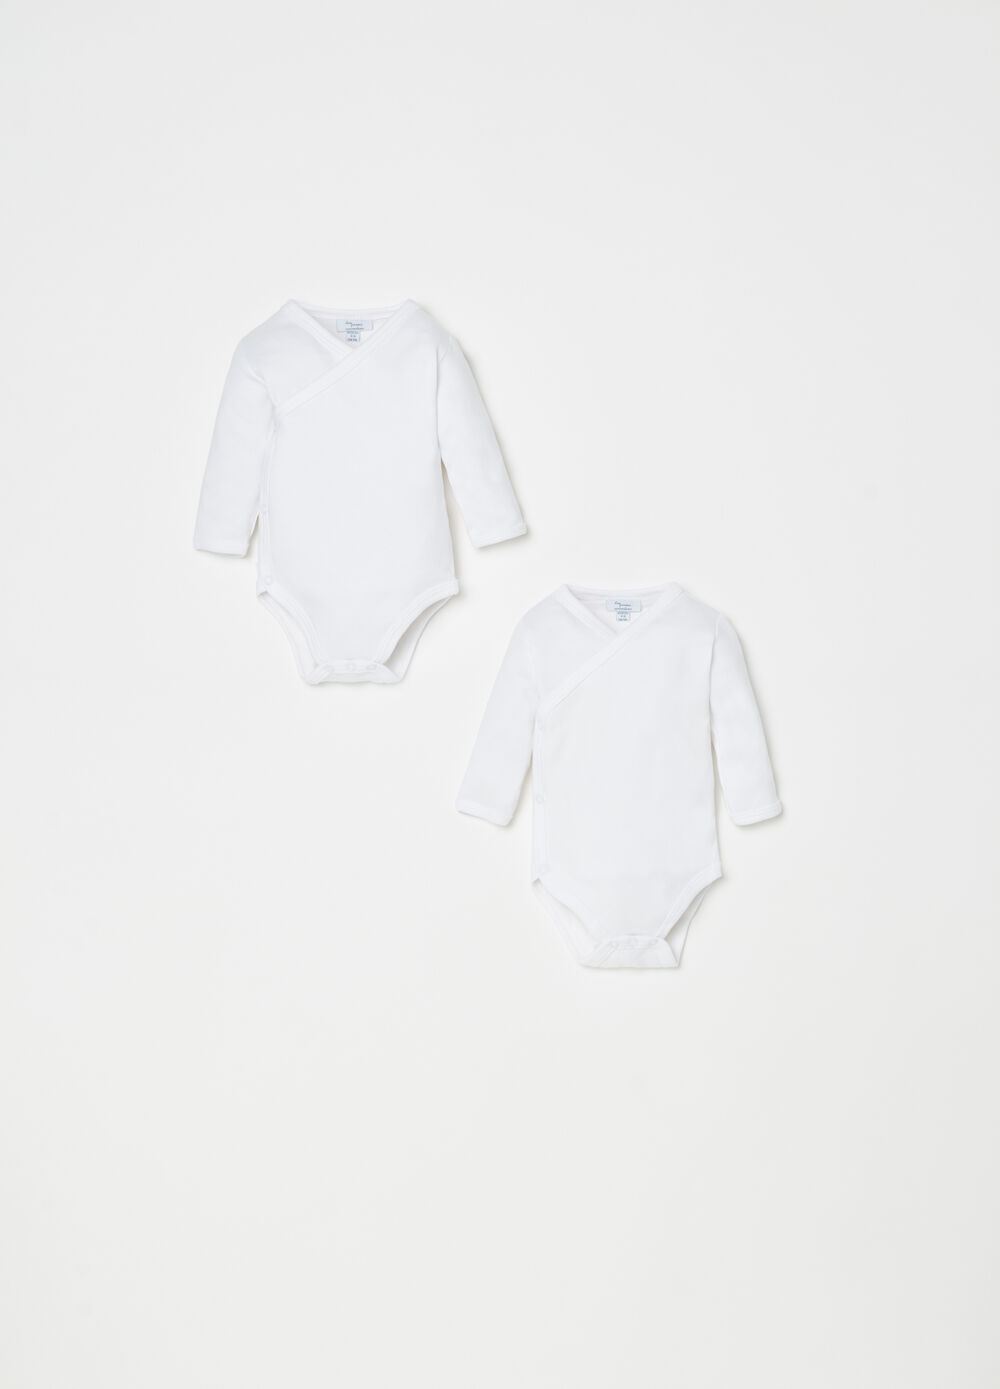 Two-pack 100% cotton bodysuit with long sleeves